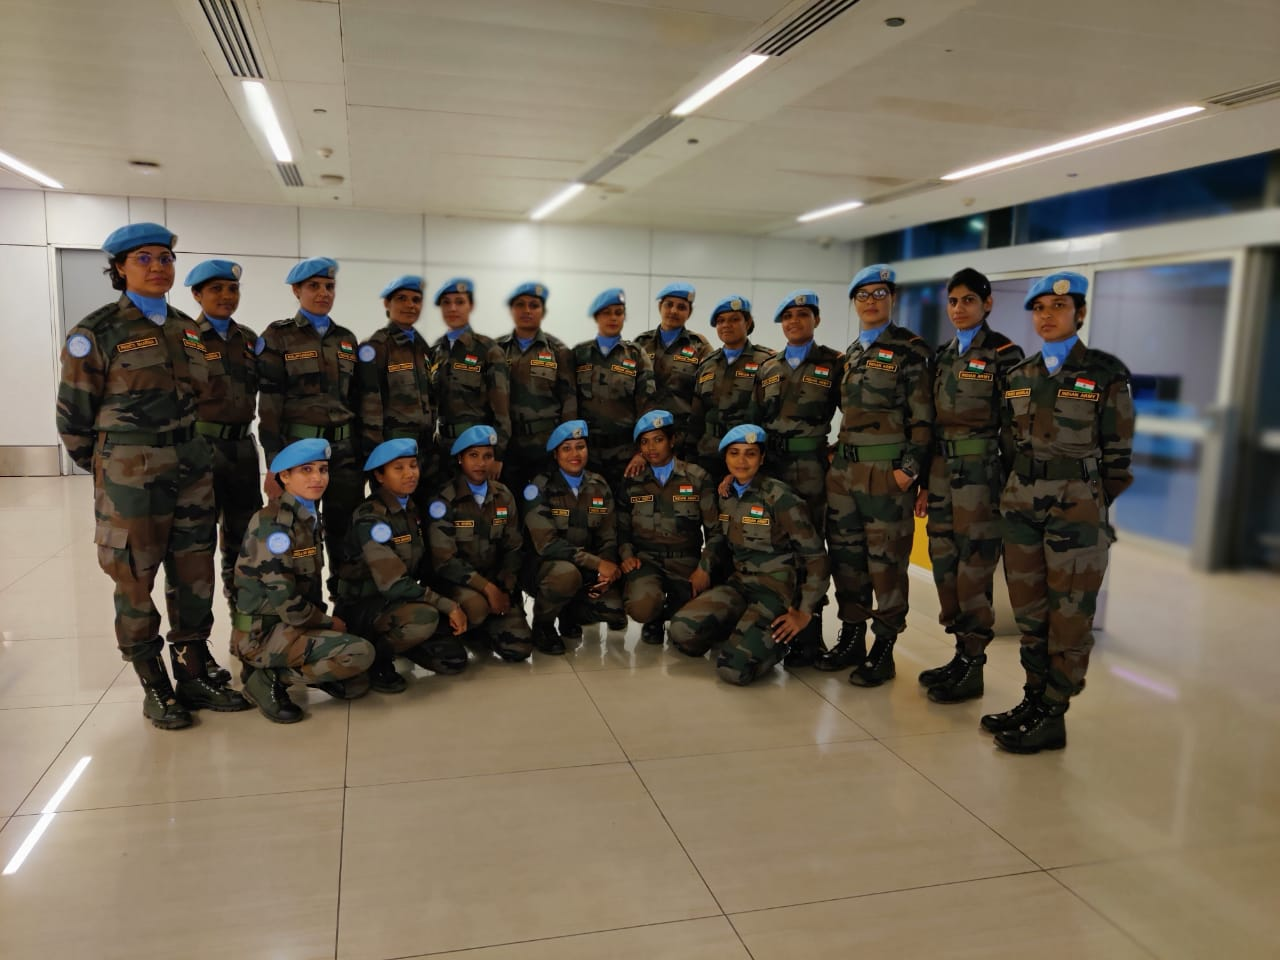 India's Female Engagement Team on way to assume duties in DRC